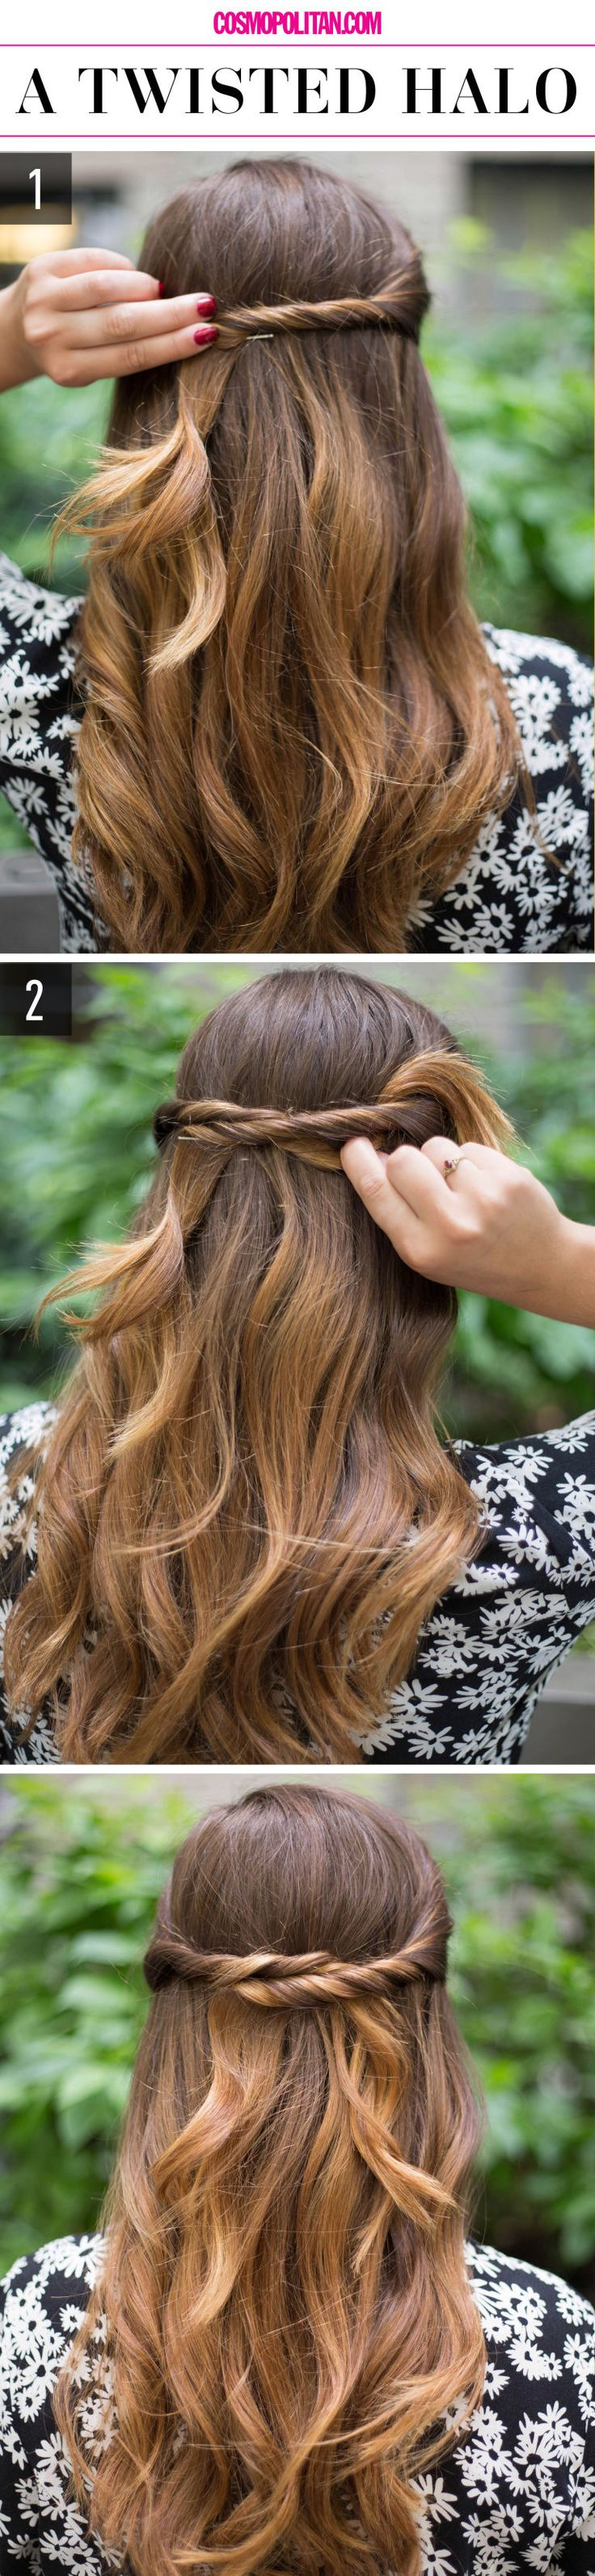 http://www.cosmopolitan.com/style-beauty/beauty/how-to/a43236/lazy-girl-hairstyles/